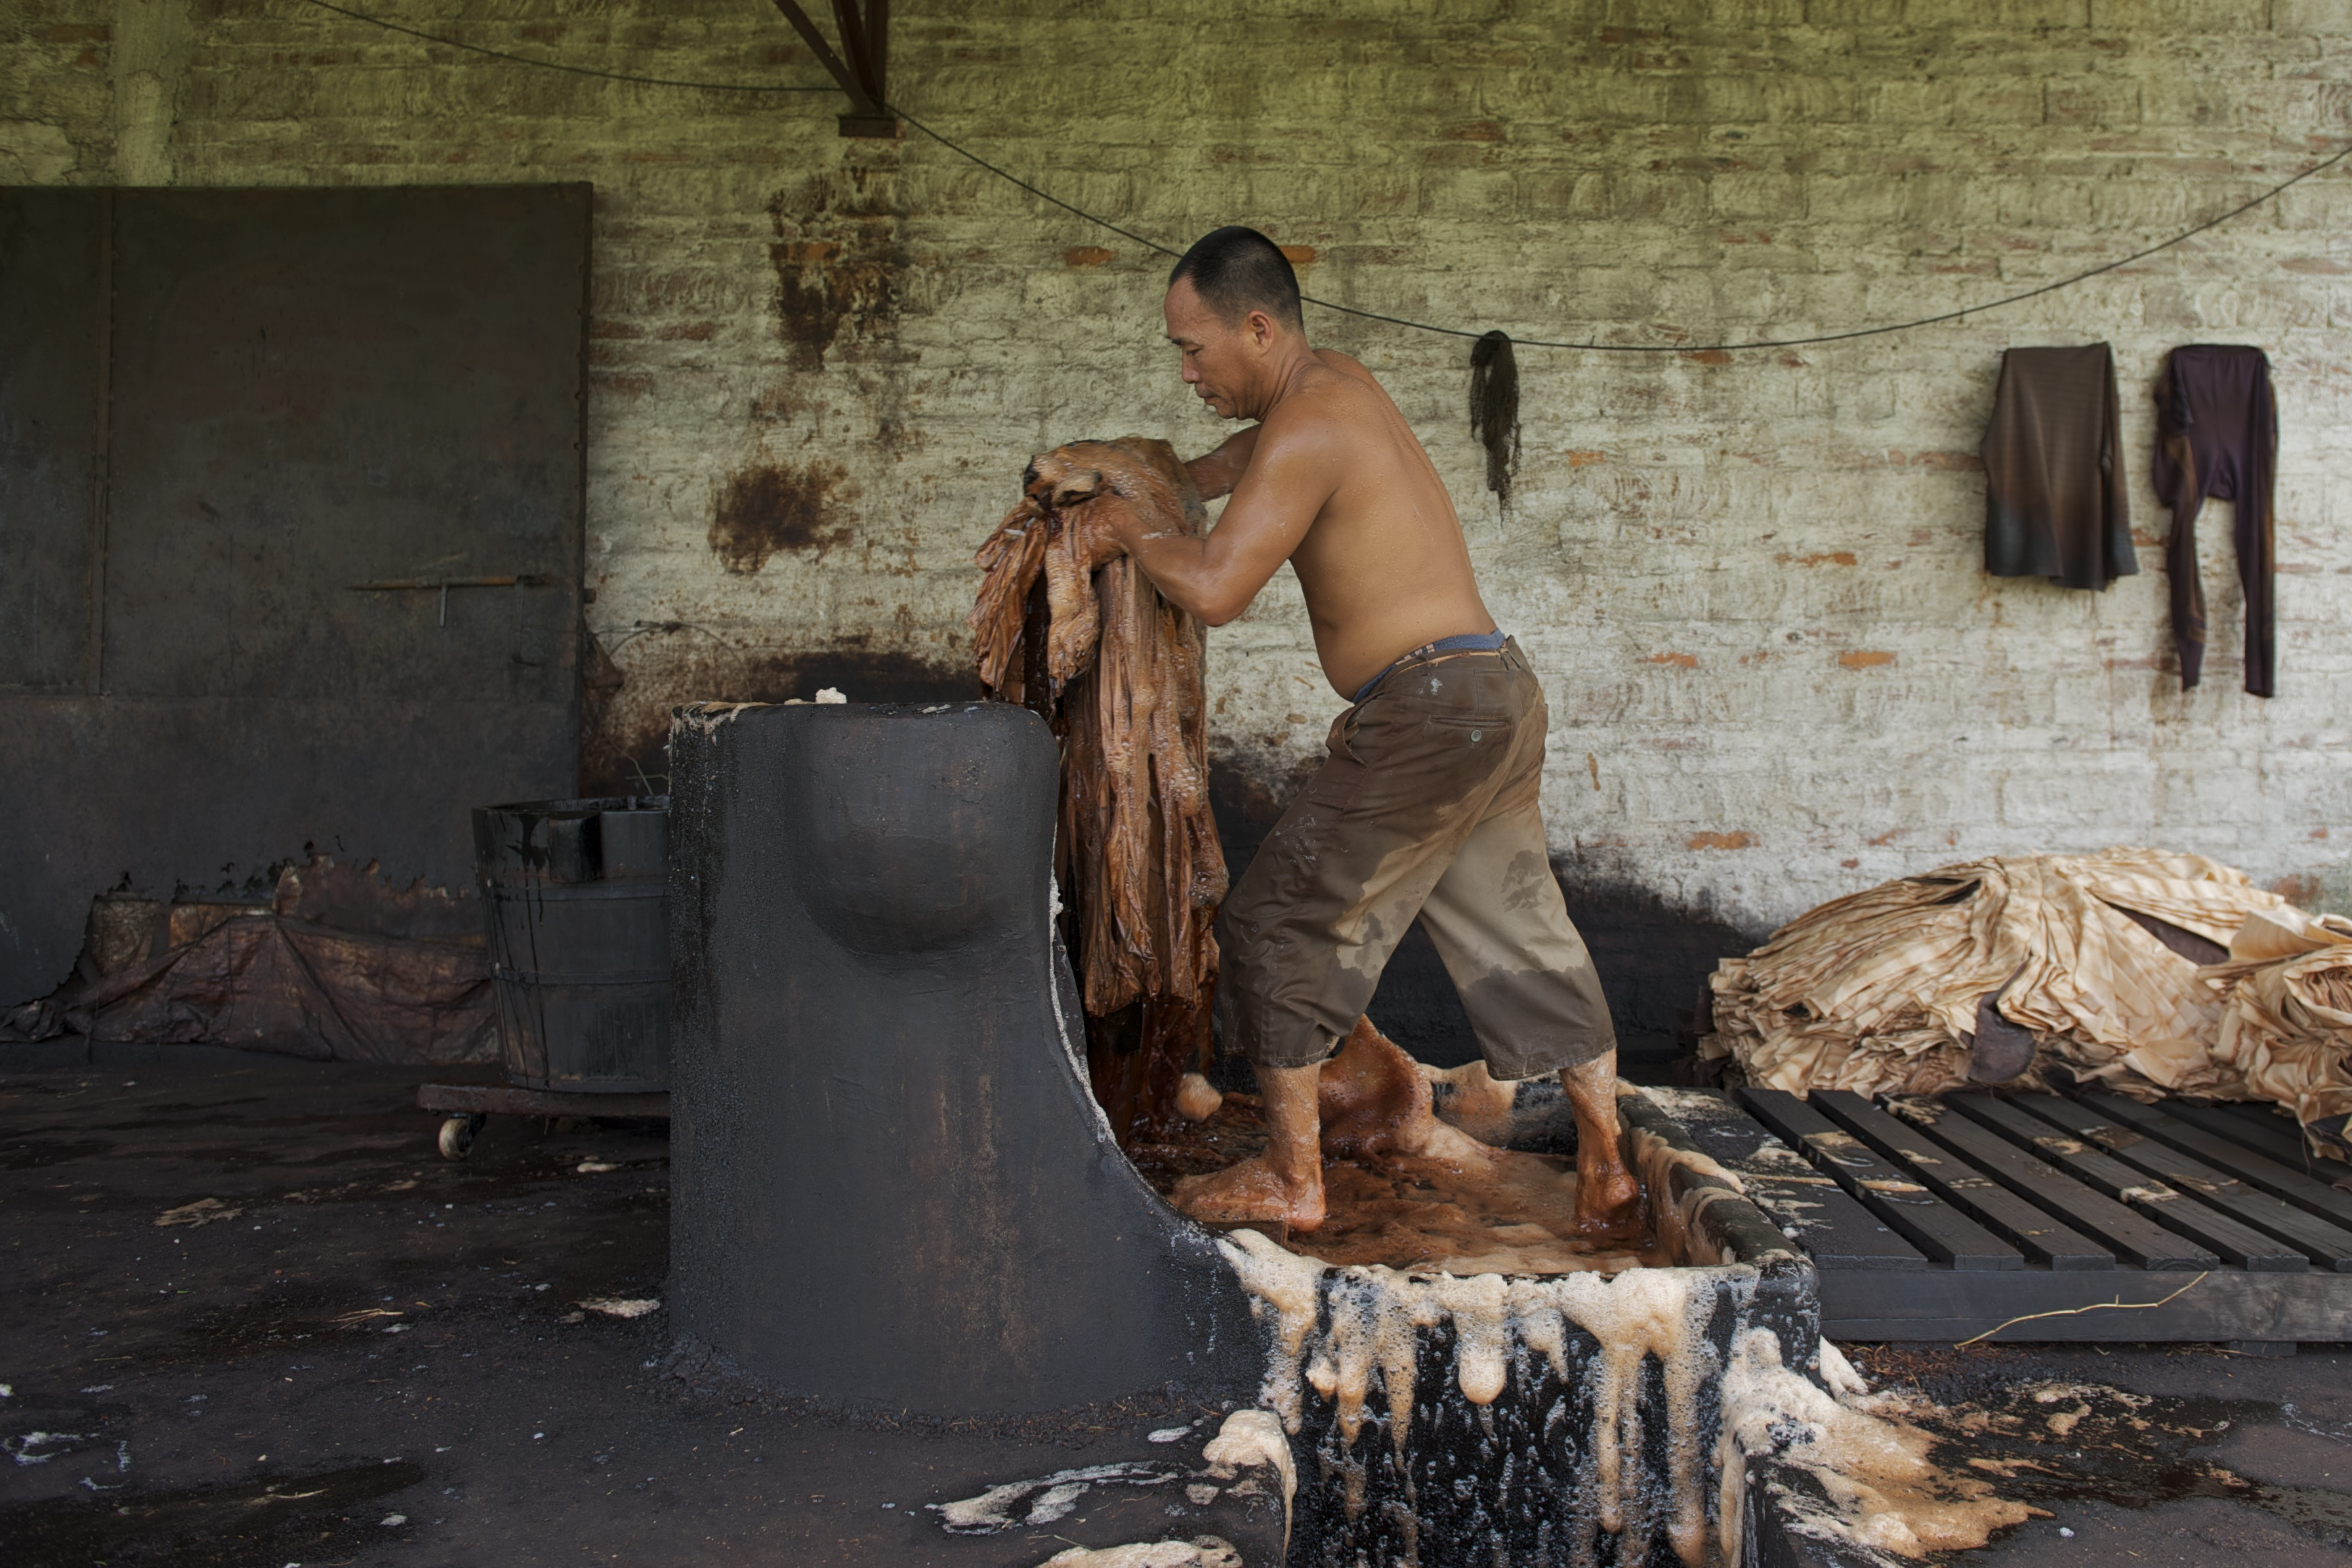 1-feeding-the-fabric-into-the-dye-early-on-during-the-extensive-dyeing-process